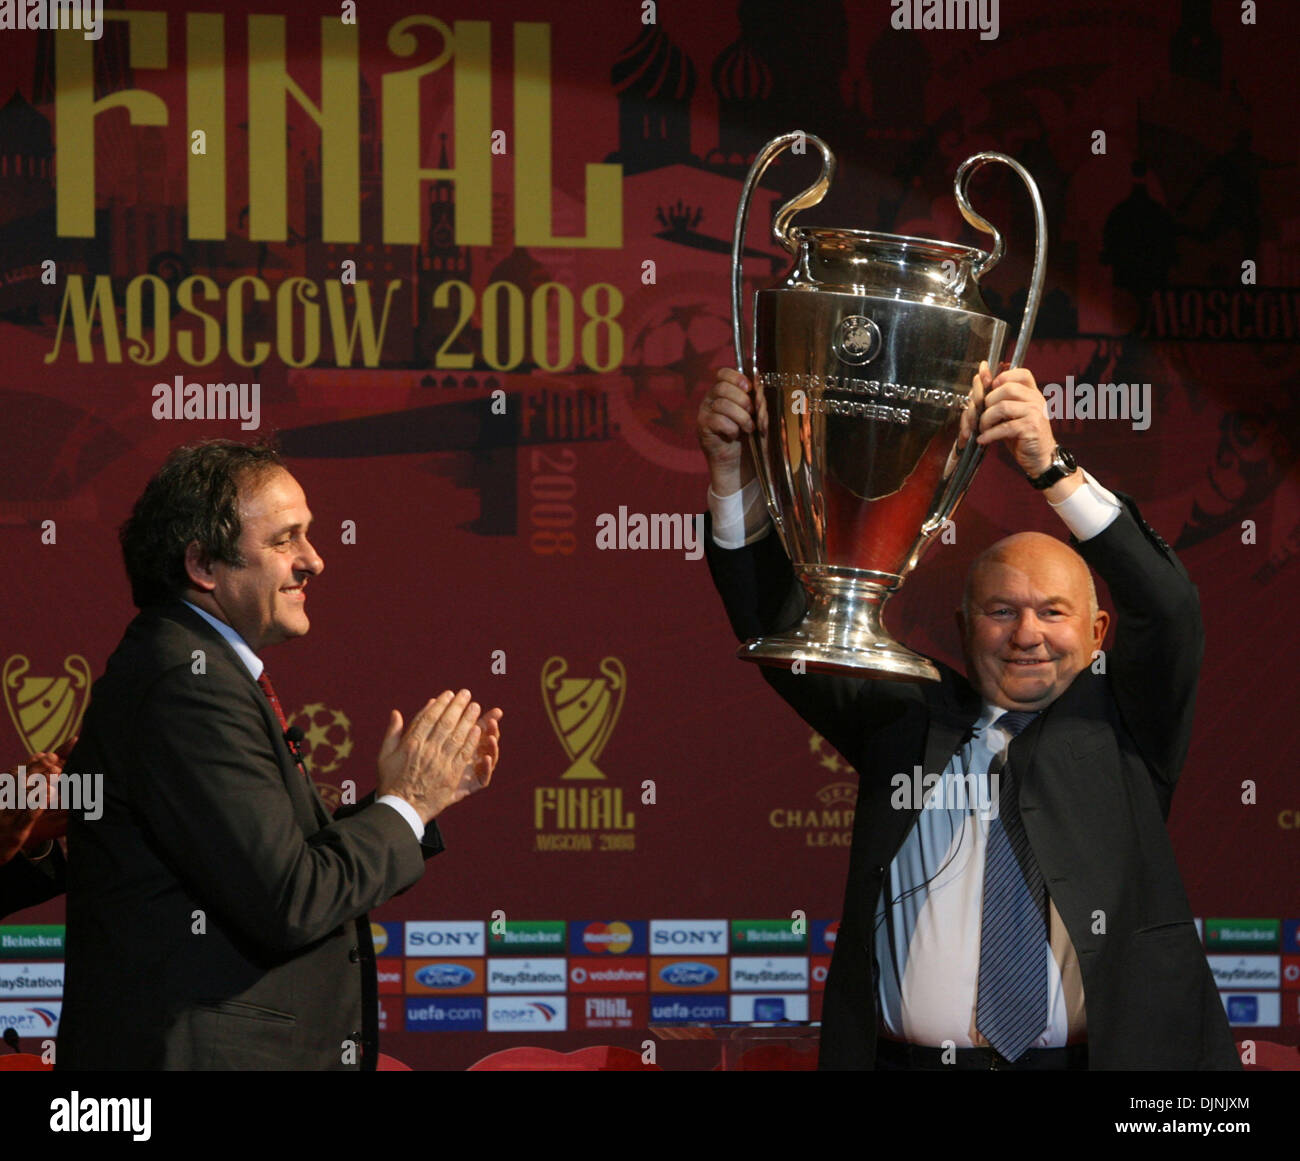 apr 30 2008 st petersburg russia the 2008 uefa champions stock photo alamy https www alamy com apr 30 2008 st petersburg russia the 2008 uefa champions league final image63170764 html